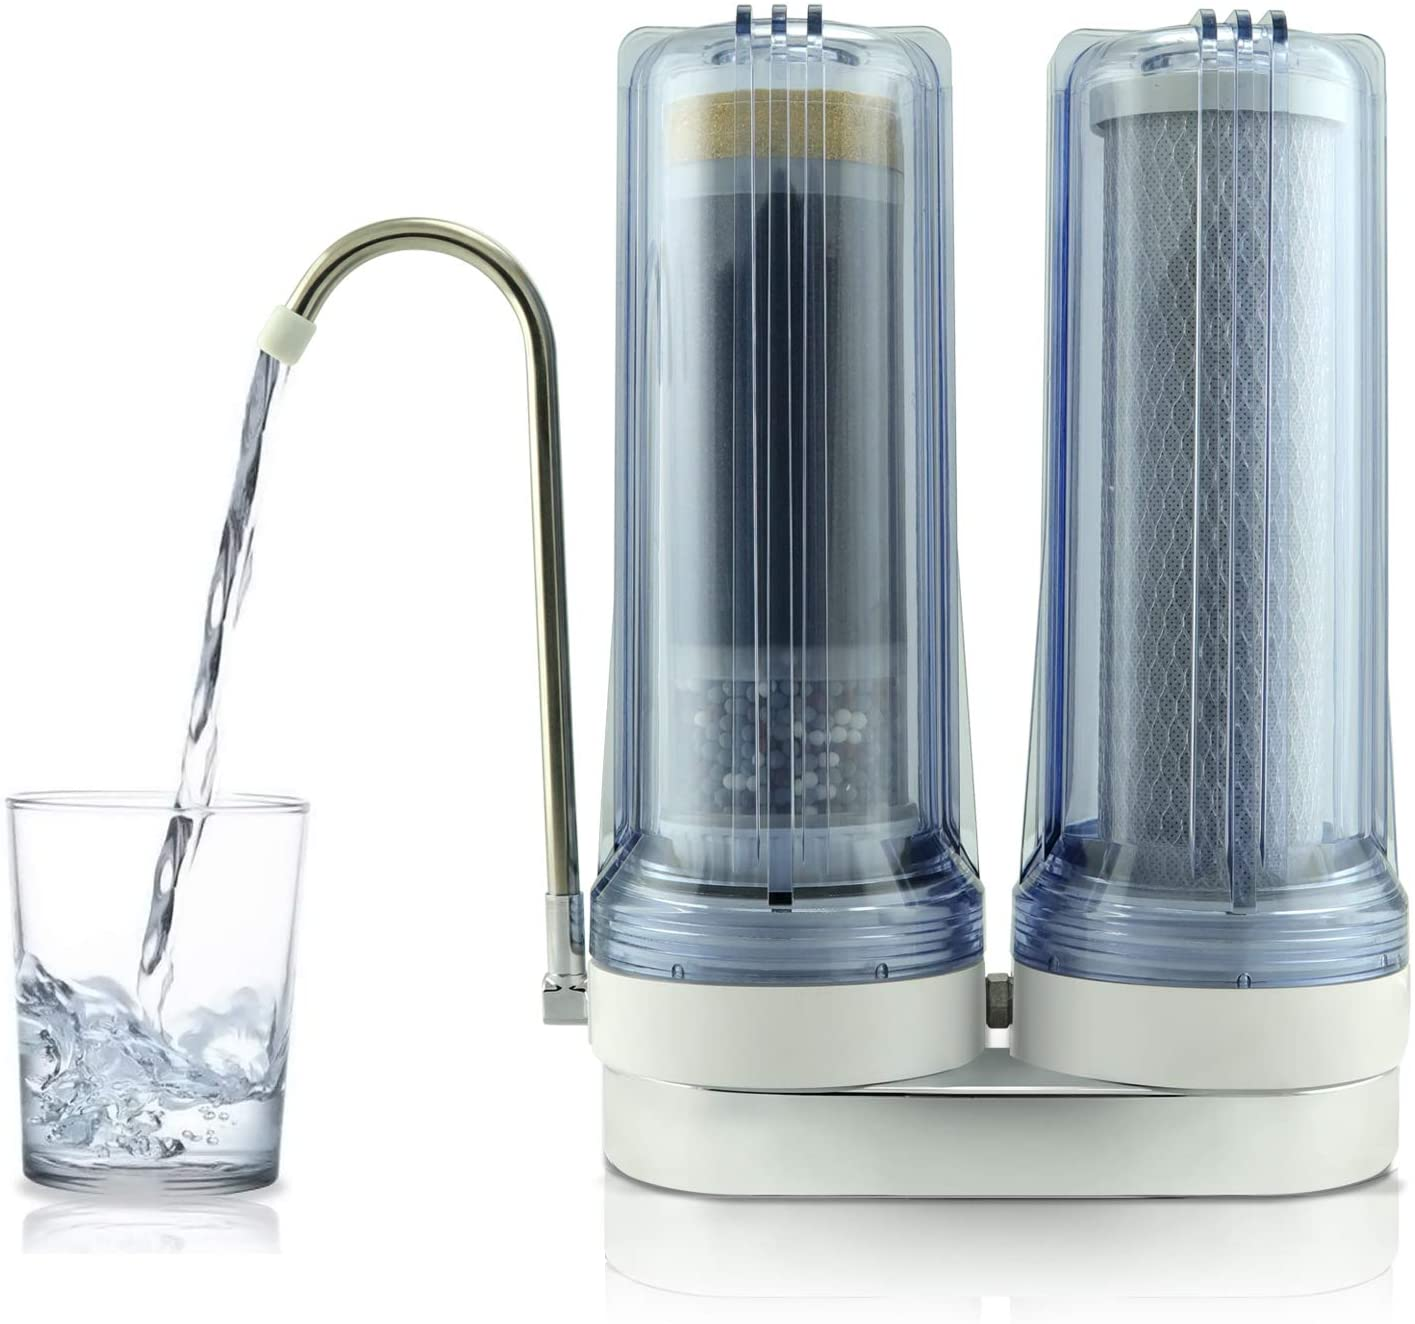 Reasons to Invest In a Countertop Water Purifier 1